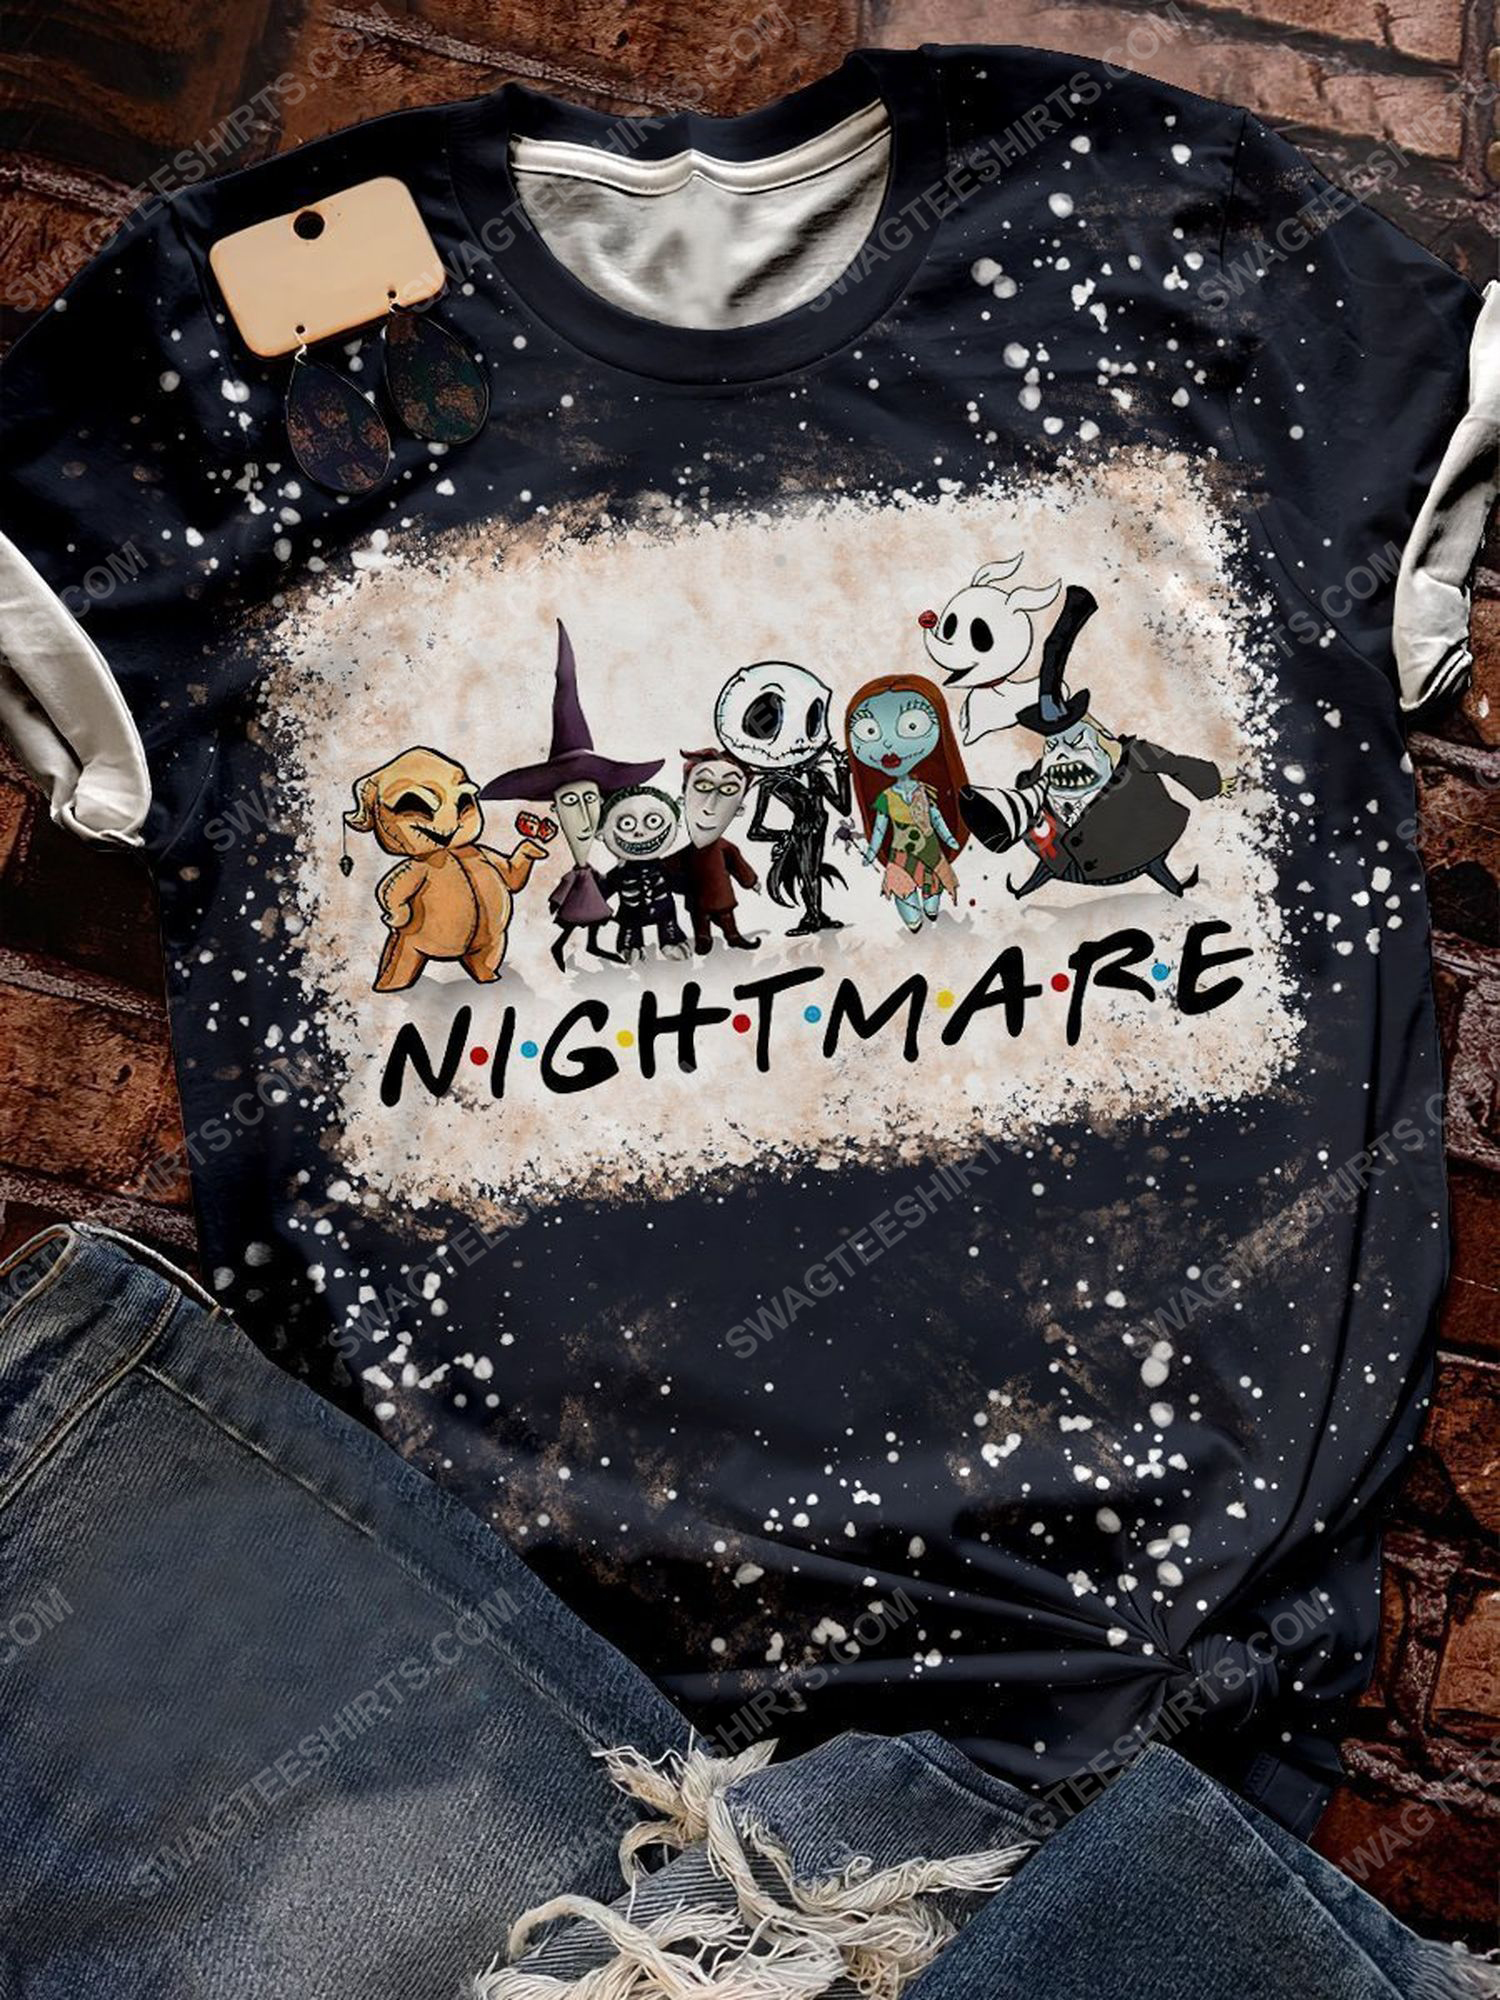 The nightmare before christmas bleached shirt 1 - Copy (3)